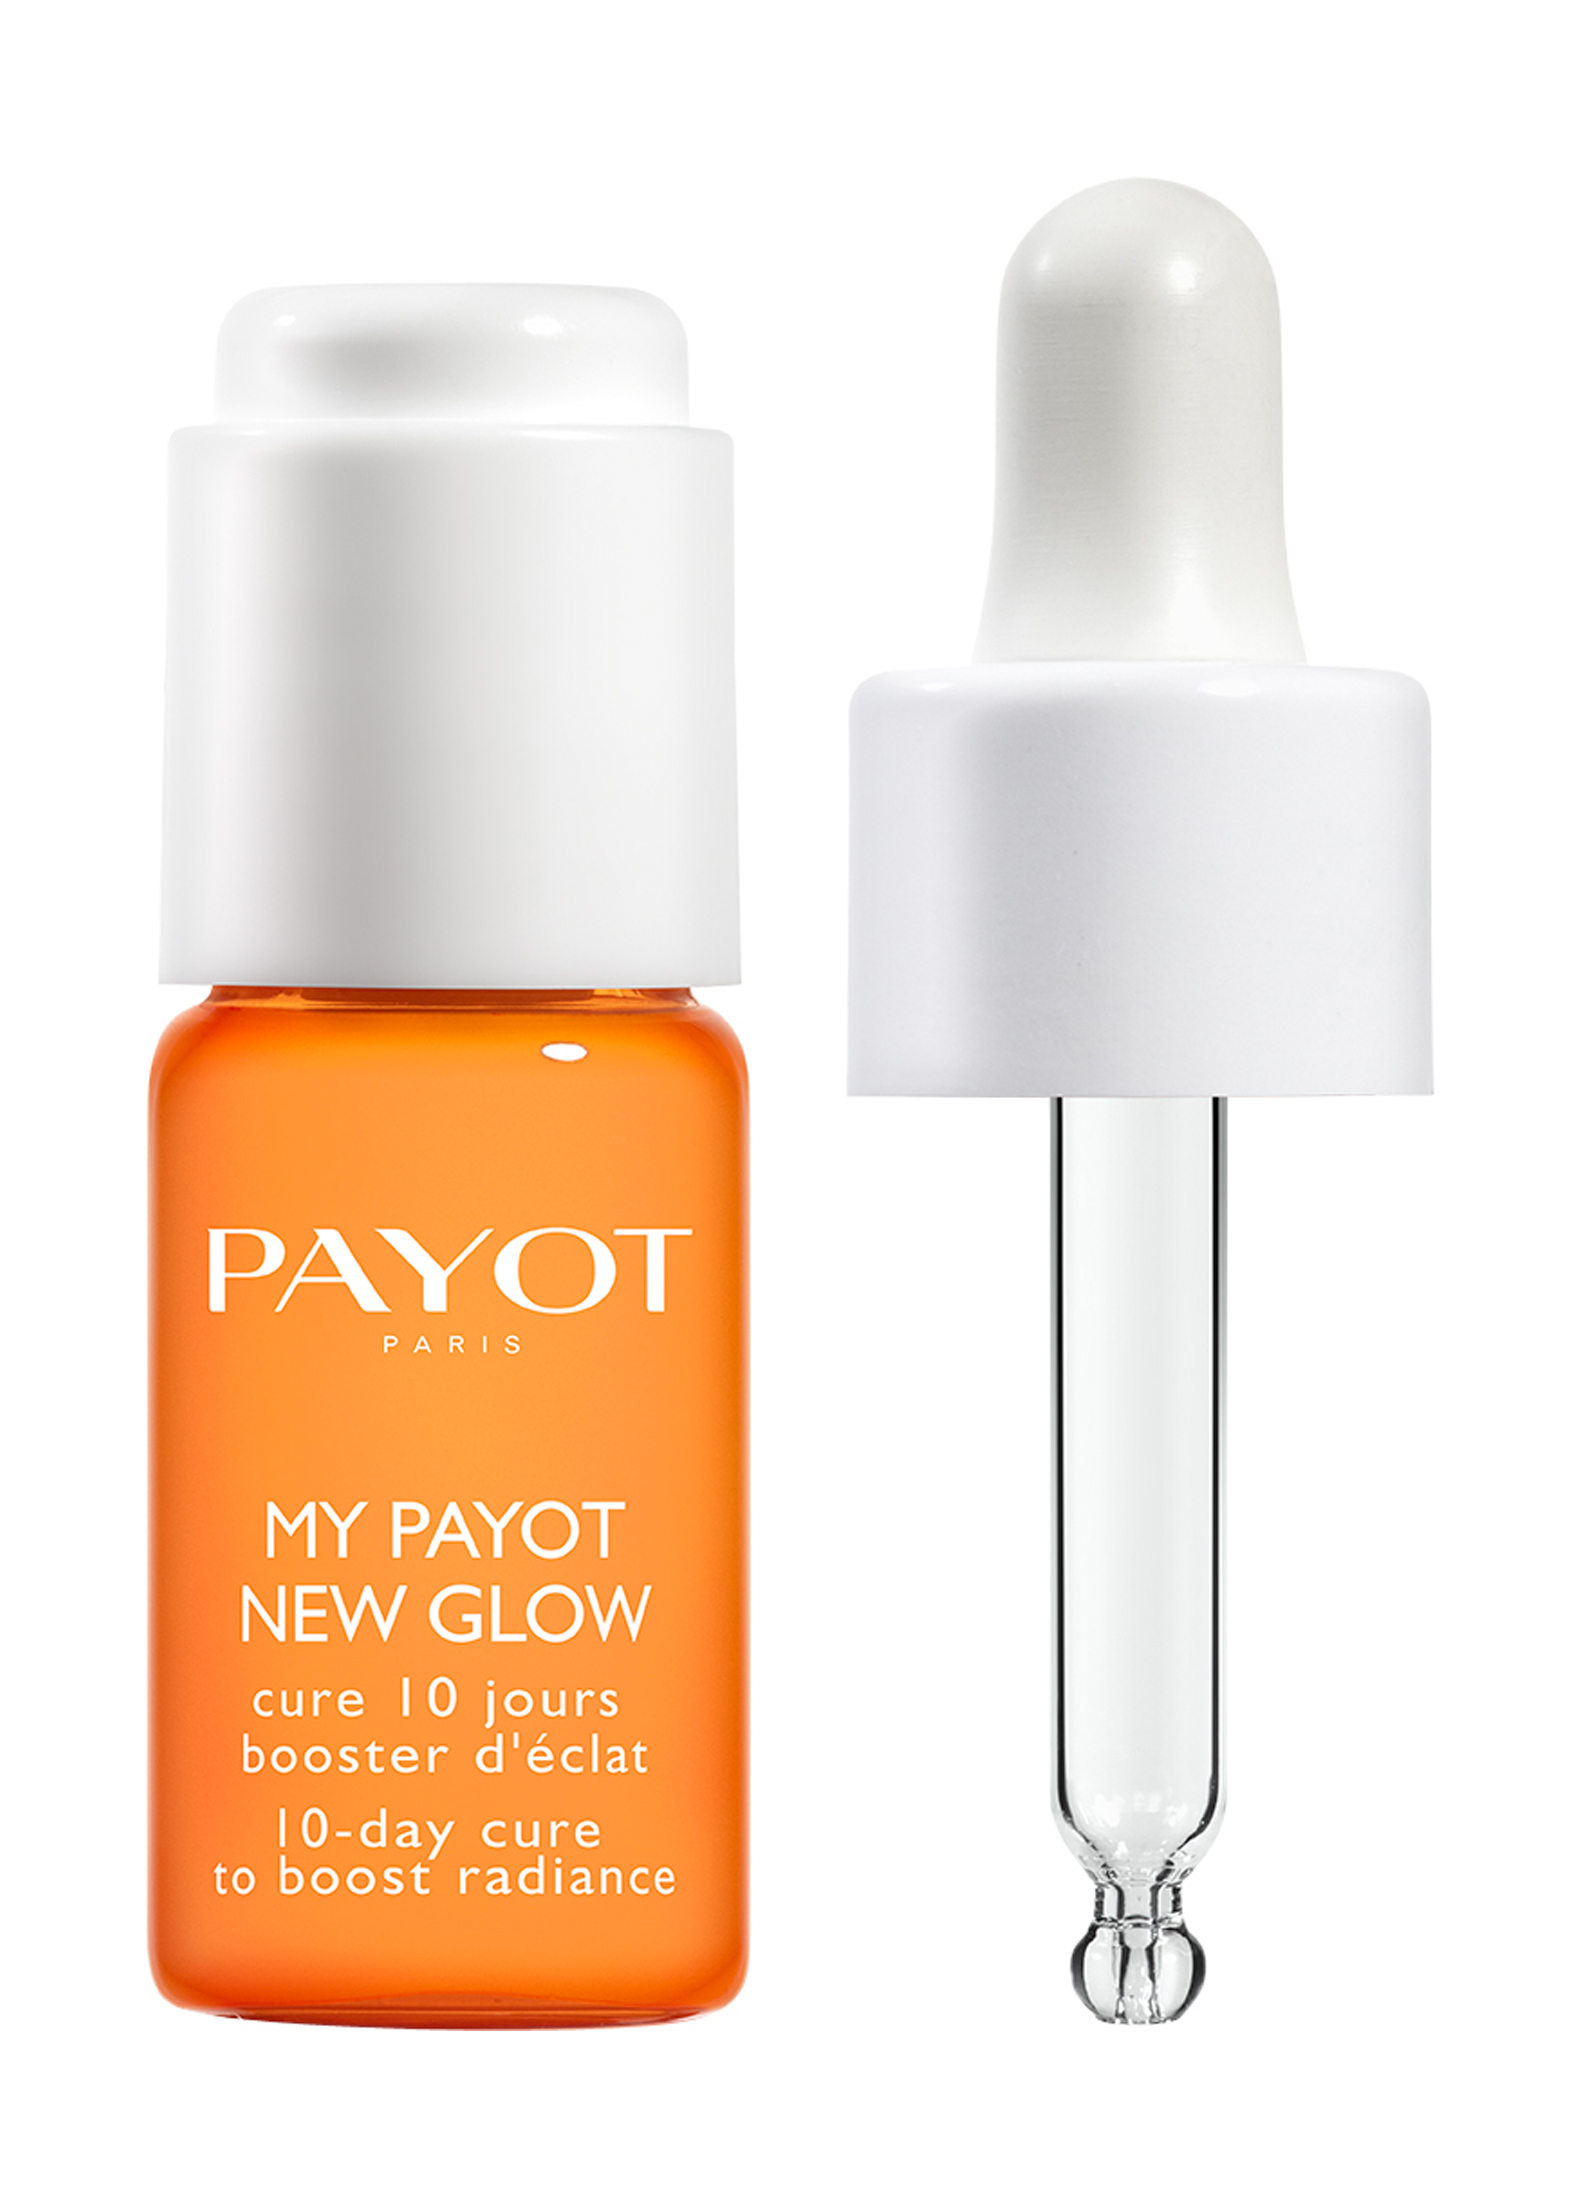 My Payot New Glow image number 1